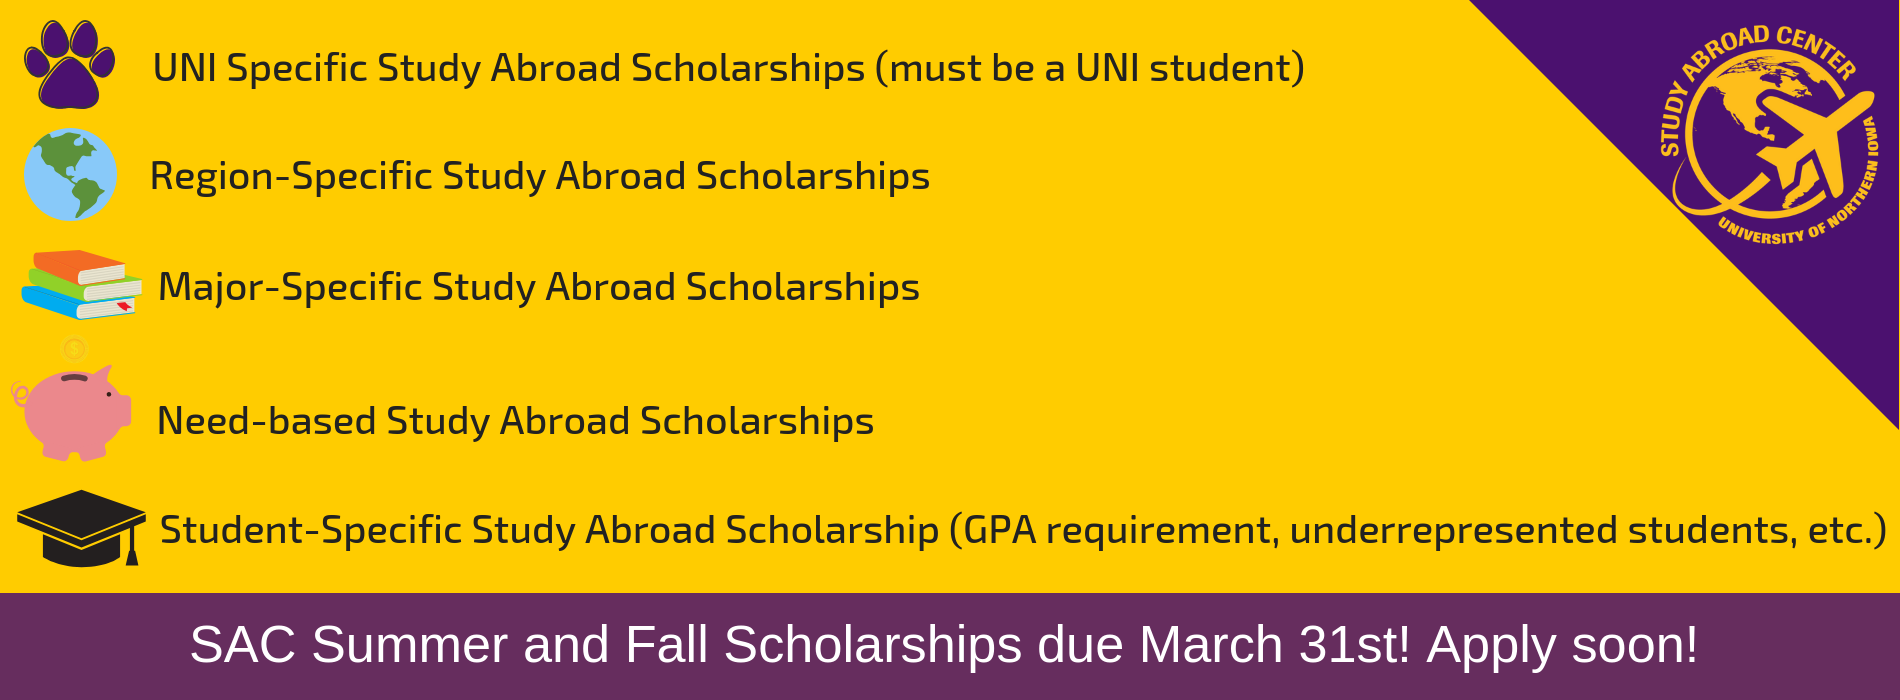 SAC Summer and Fall Scholarships due March 31st! Apply soon!